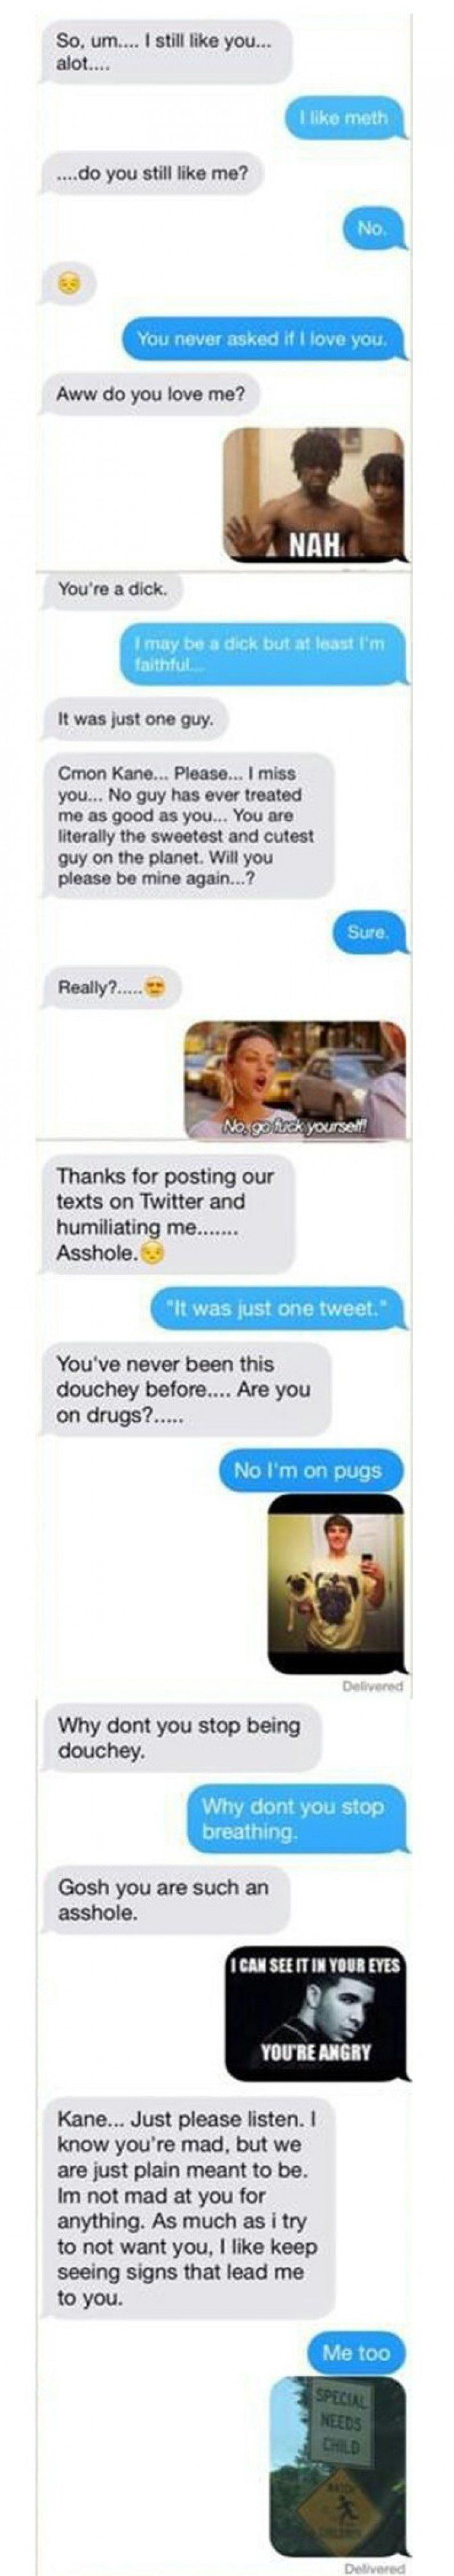 This Guy Handles Texting His Cheating Ex-Girlfriend Like A Champion (Photos)